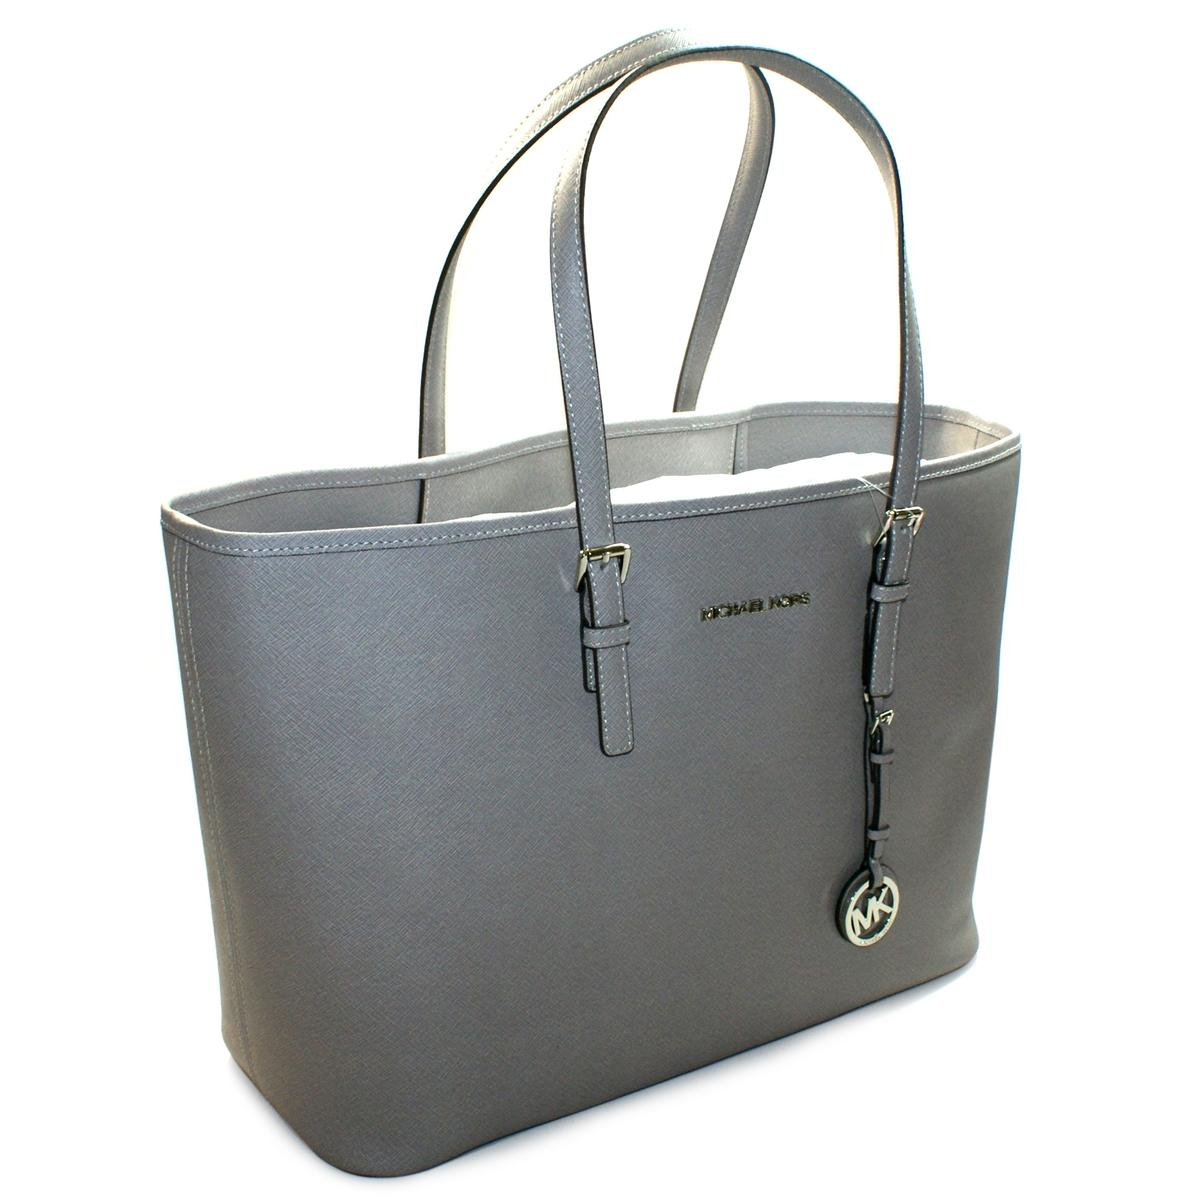 5d7c02ff2a2d05 Home · Michael Kors · Jet Set Medium Travel Genuine Saffiano Leather Tote  Pearl Grey. CLICK THUMBNAIL TO ZOOM. Found ...